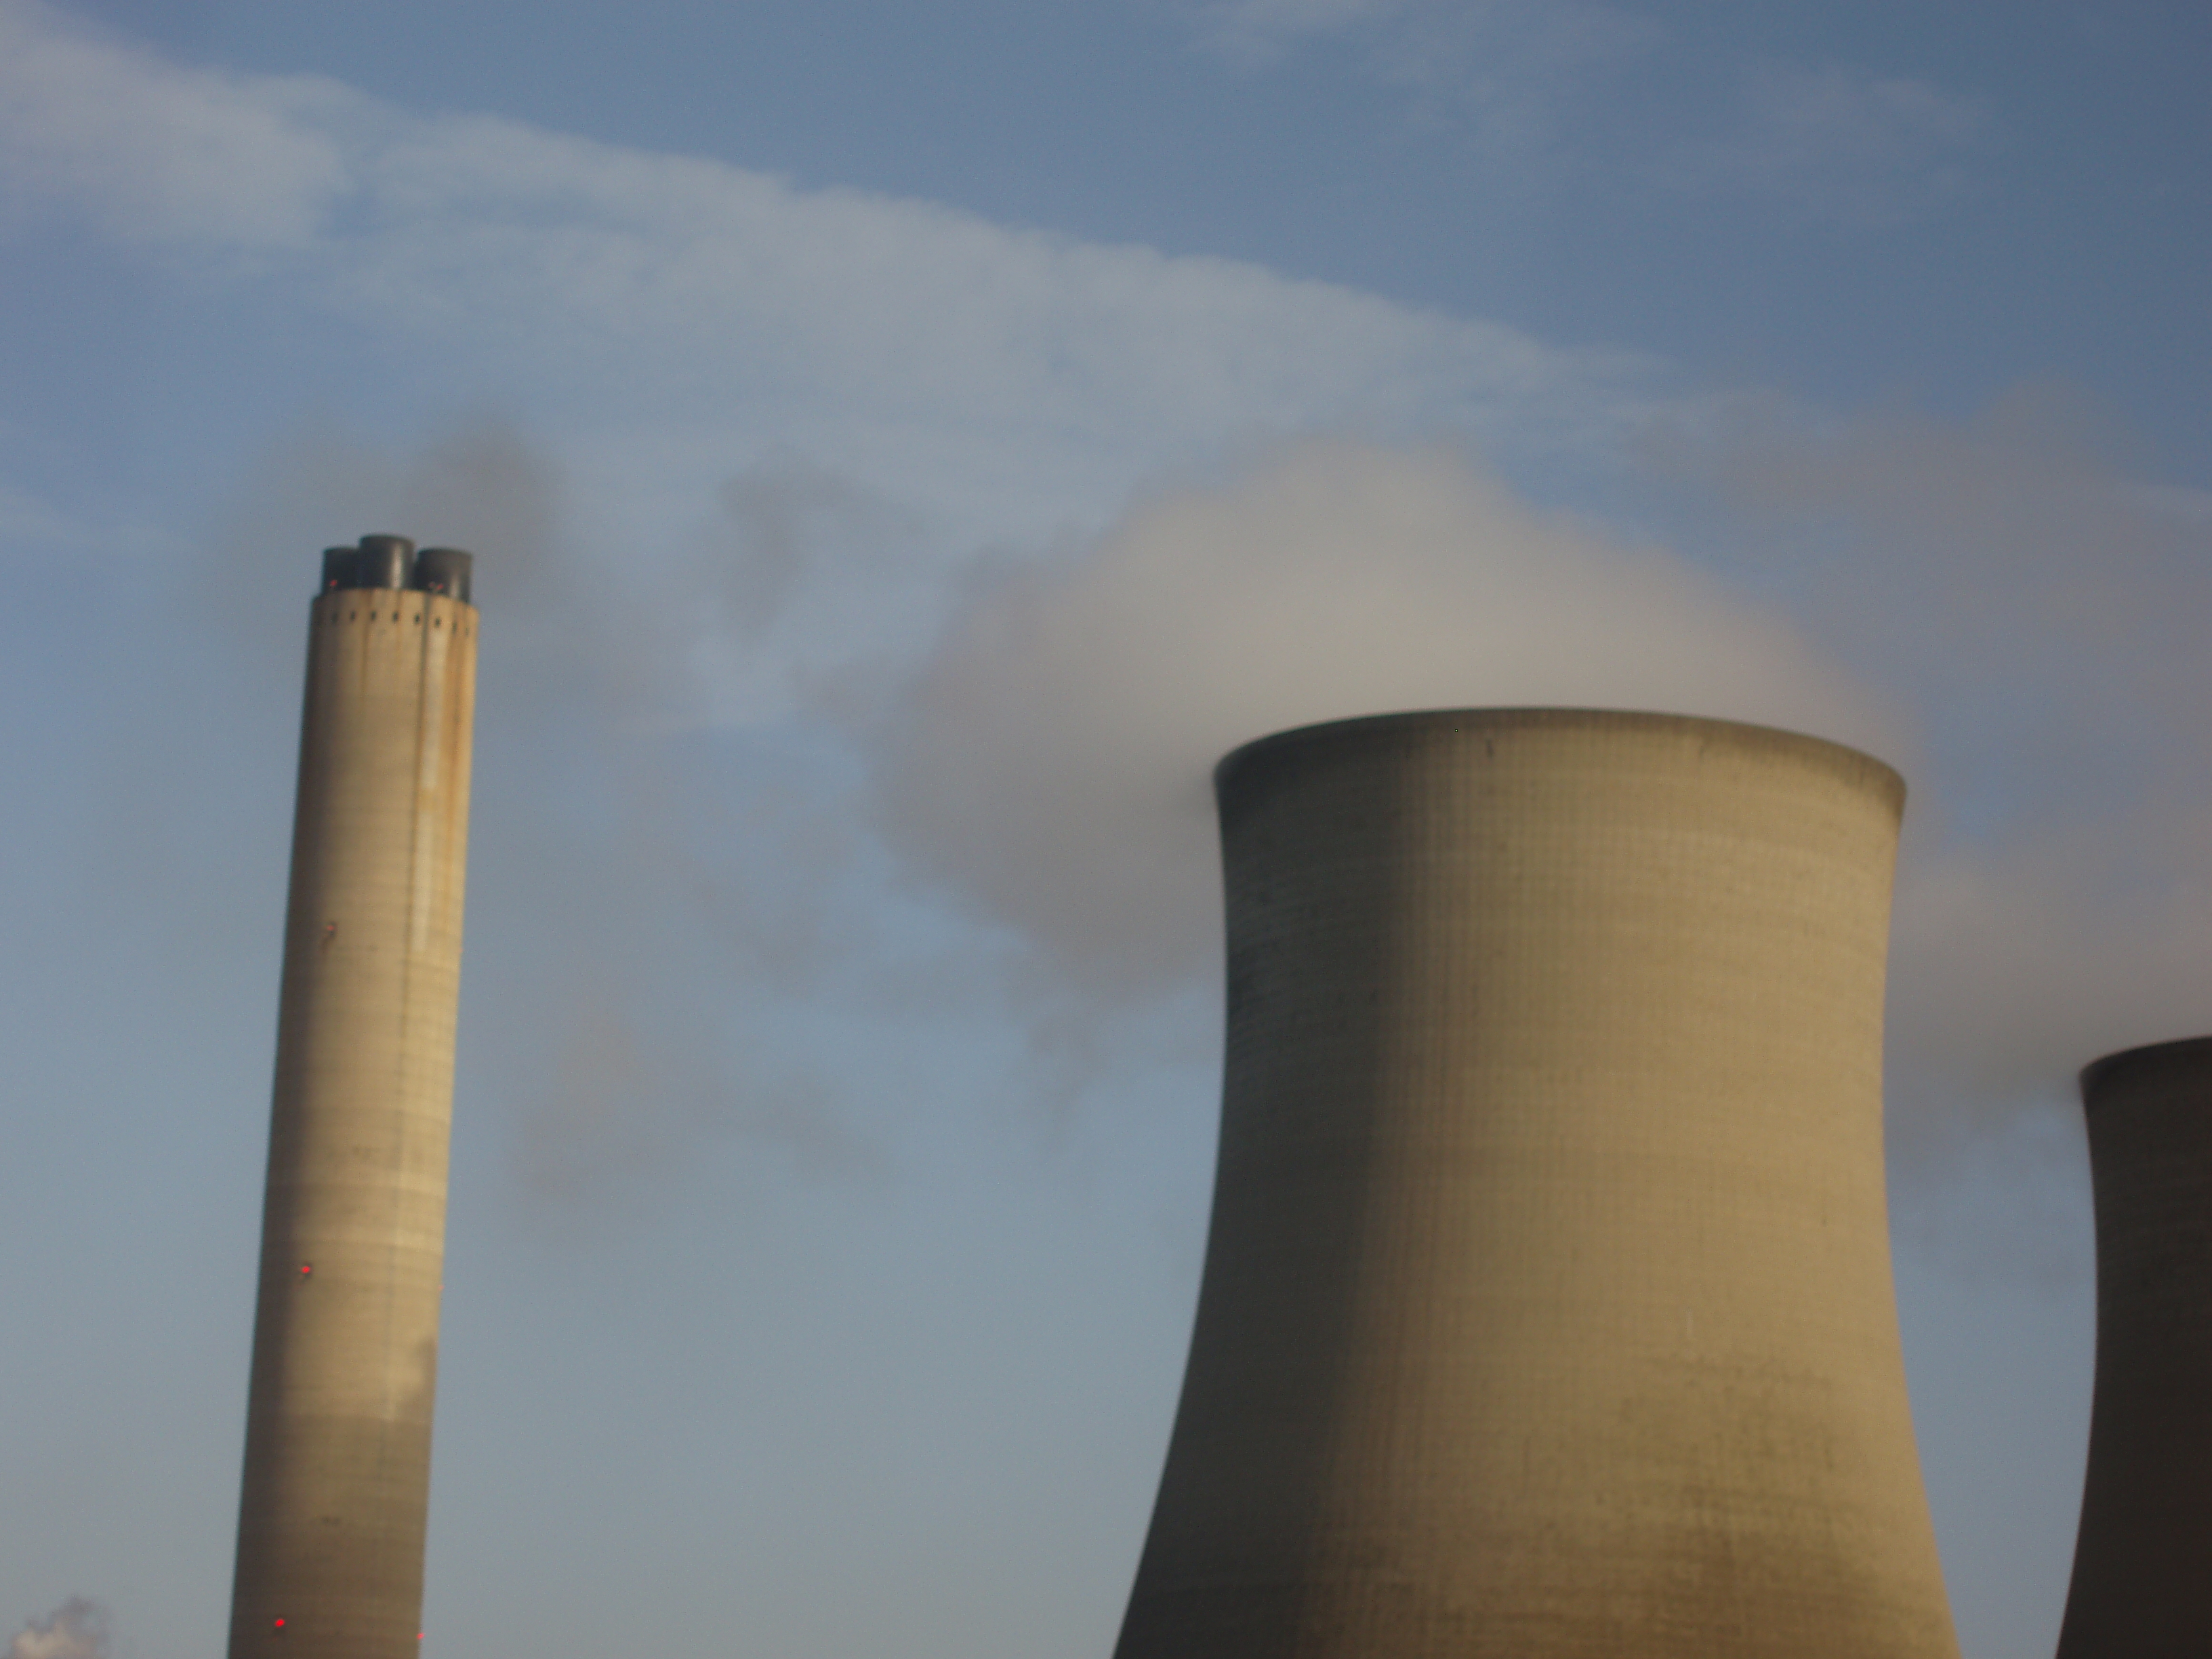 blurred cooling towers